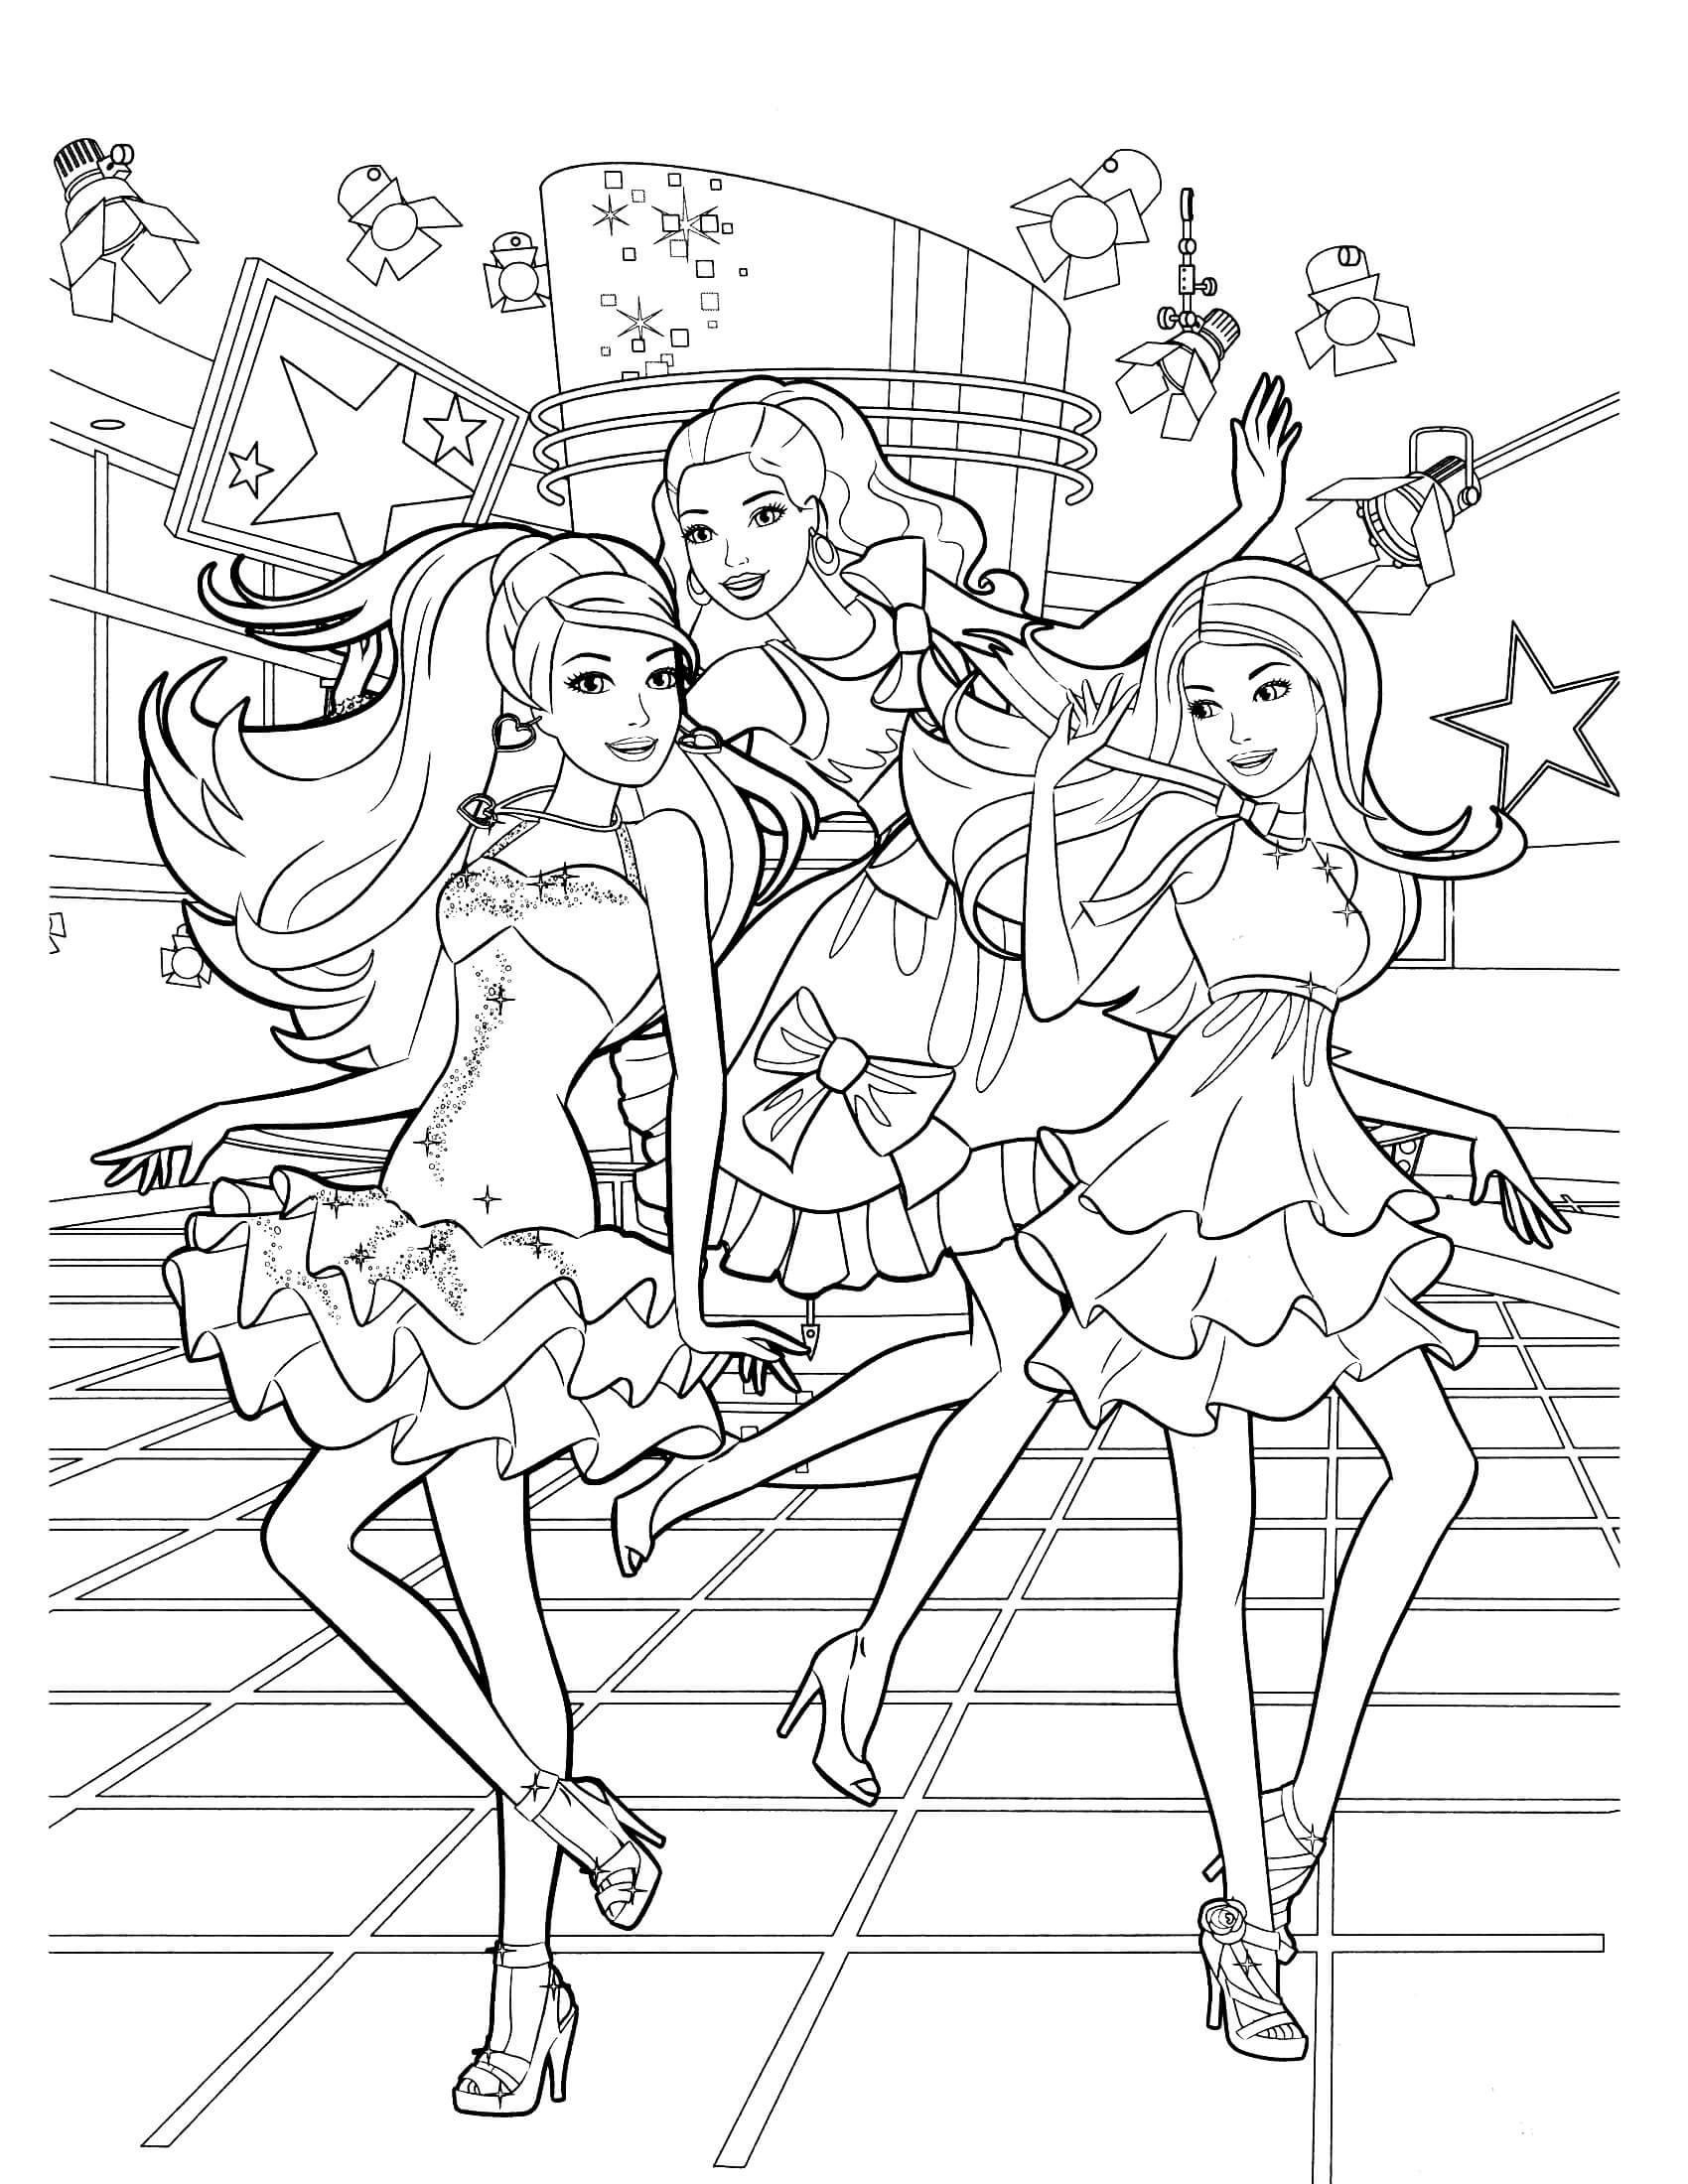 free printable barbie coloring pages free printable barbie coloring pages for kids coloring printable pages free barbie